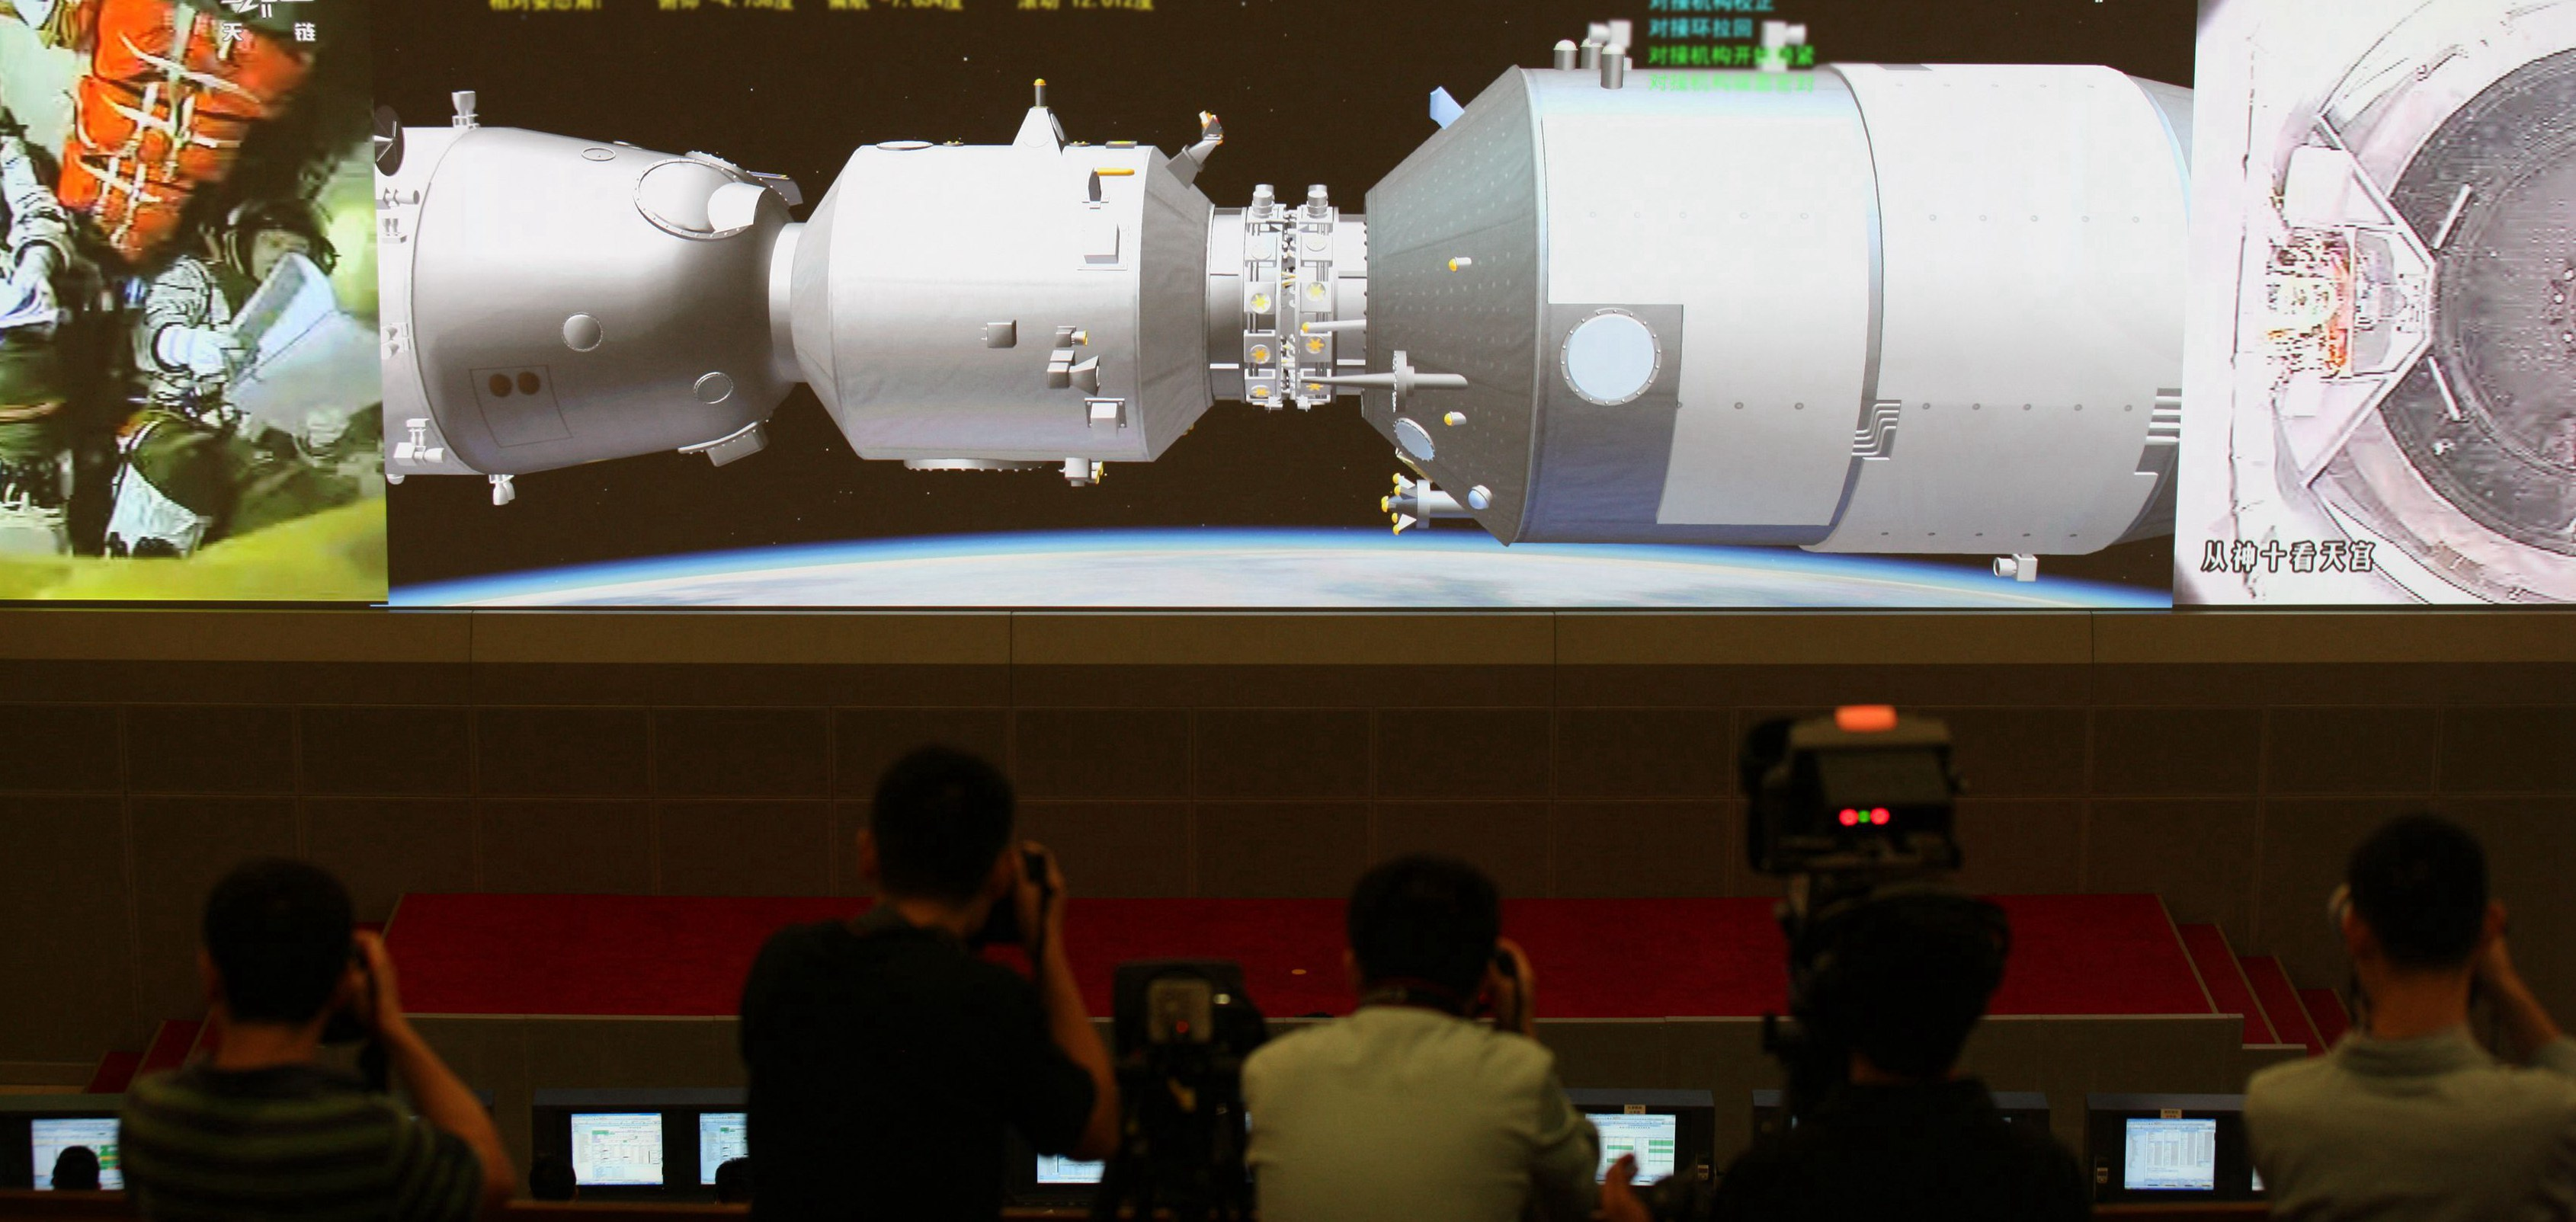 Scientists look at the screen showing the Shenzhou 10 manned spacecraft conducting docking with the orbiting Tiangong 1 space module at Beijing Aerospace Control Center on June 13, 2013, in Beijing